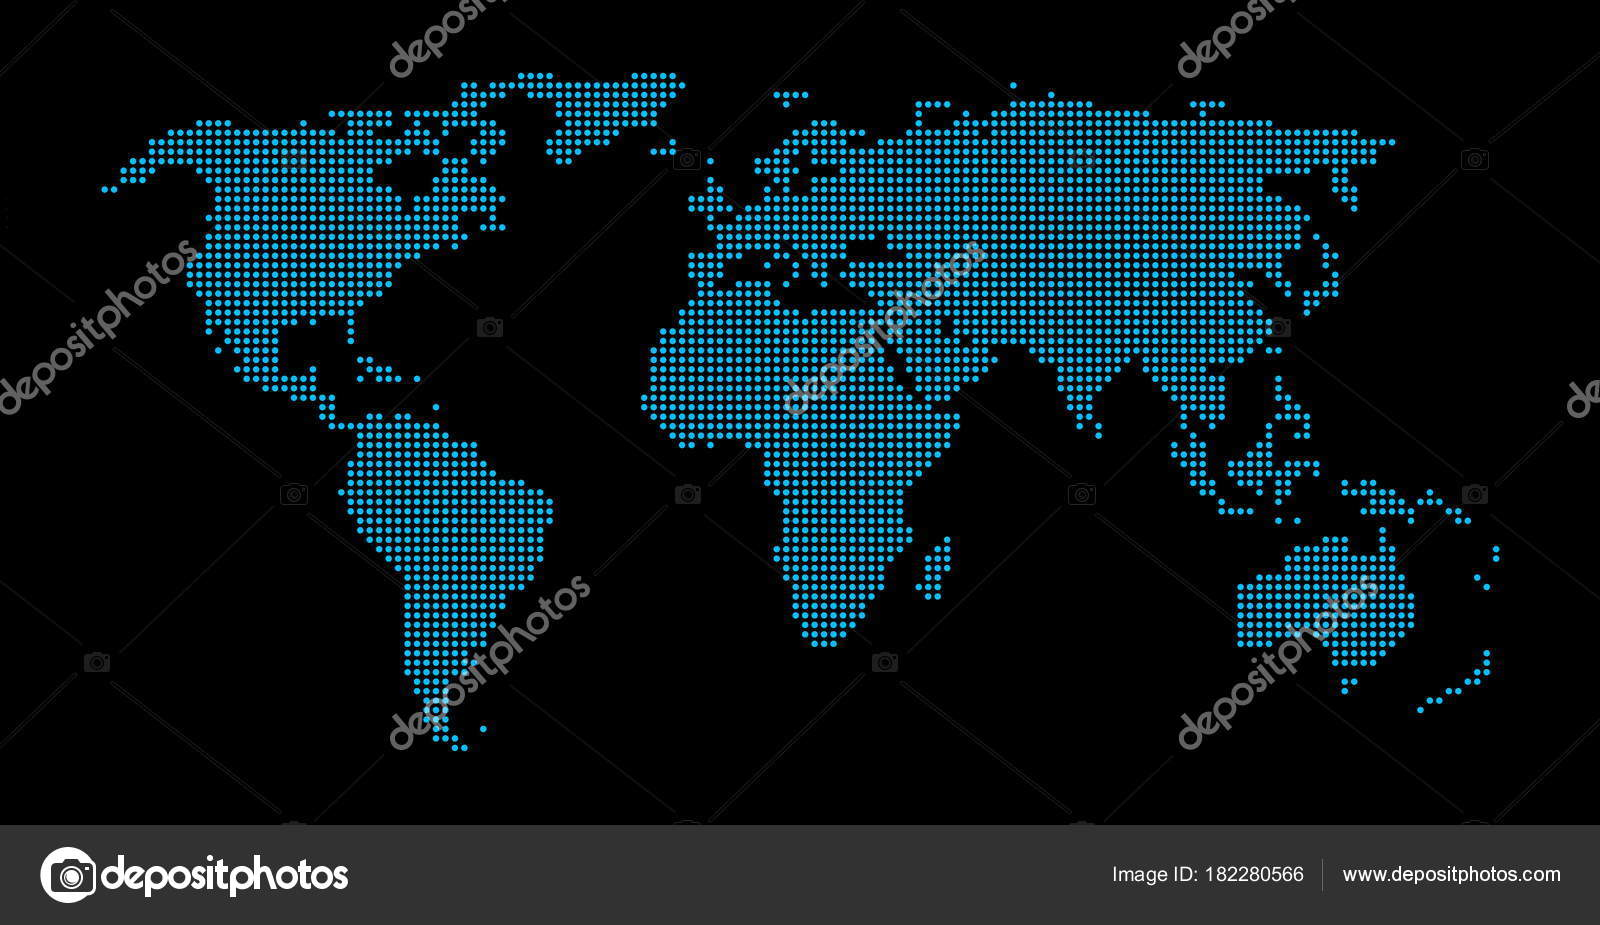 Modern world map black blue stock photo keport 182280566 turquoise black world map with dots photo by keport gumiabroncs Images